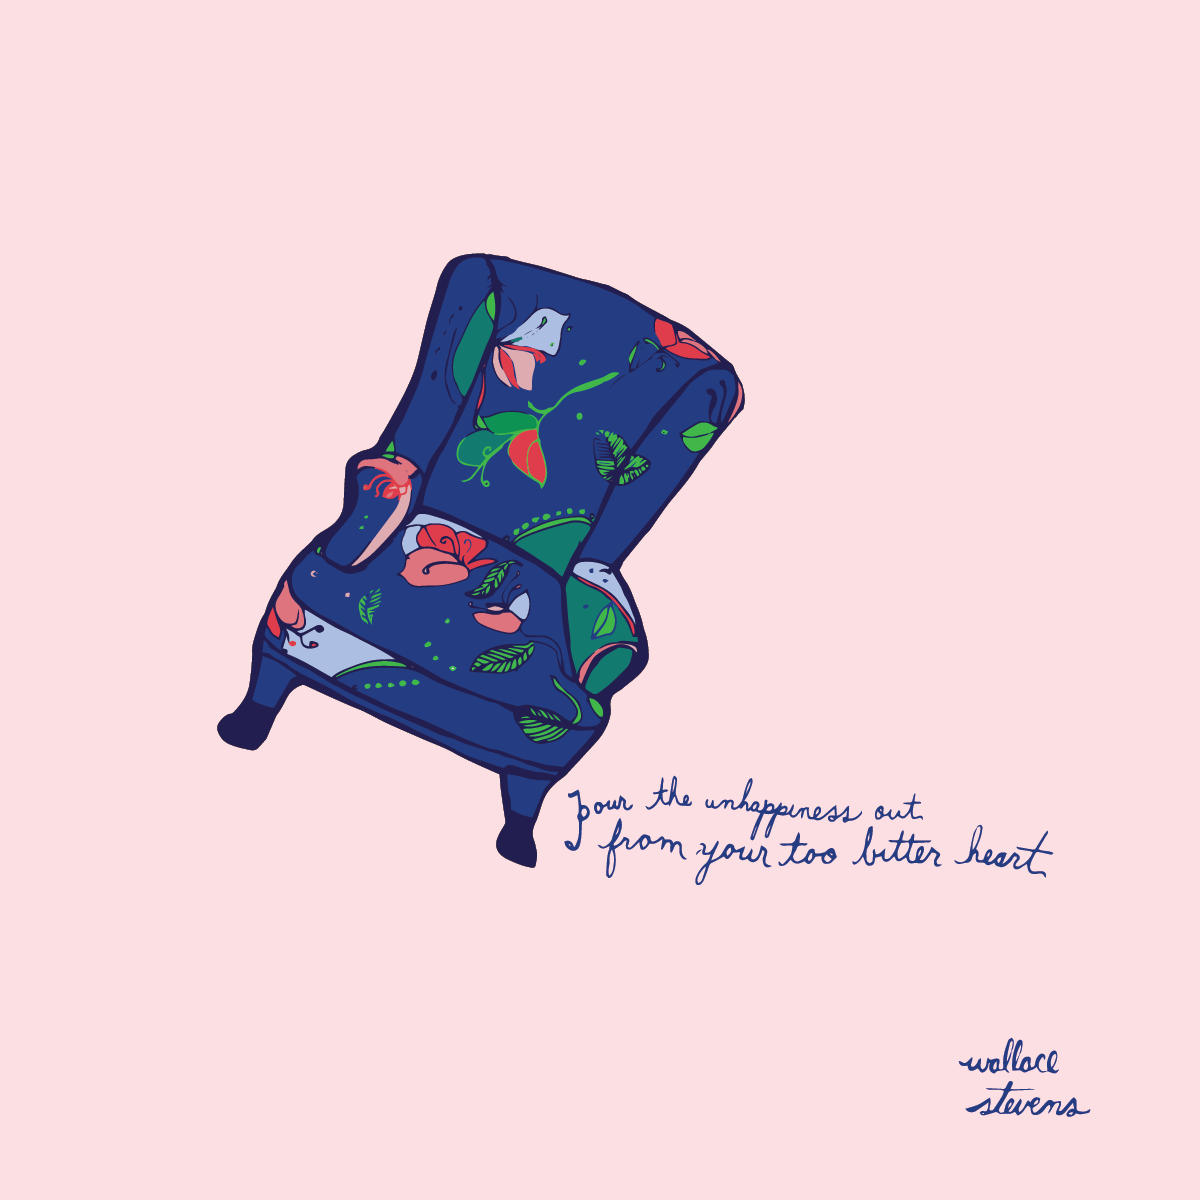 Chair_Wallace Stevens.png